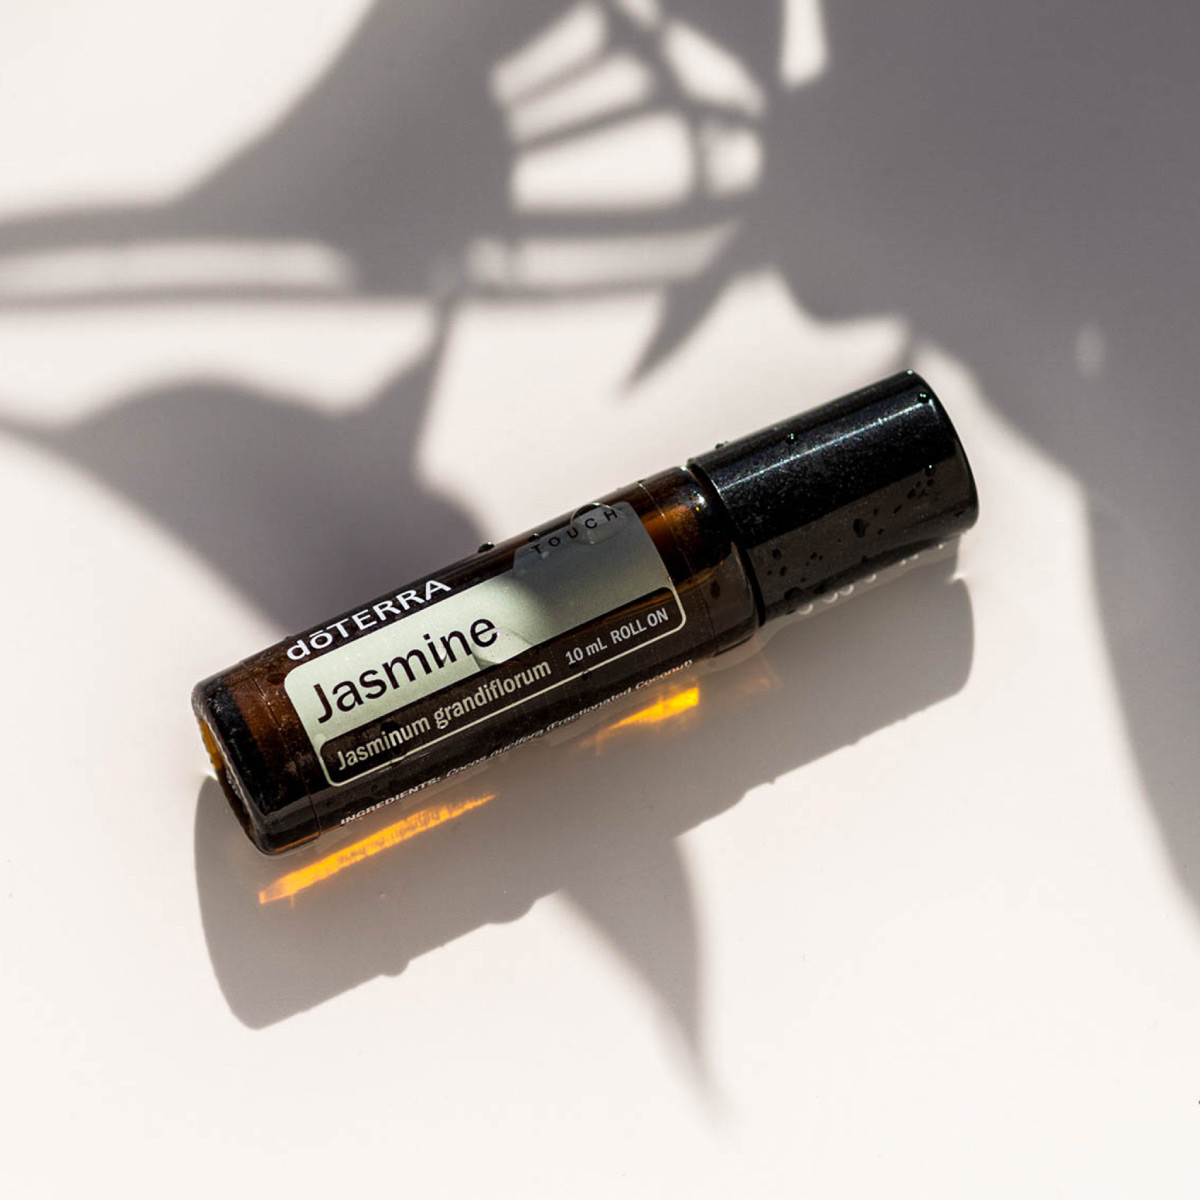 Bottle of Jasmine oil and shadows of a plant. Jasmine oil is good for skin and can help reduce the appearance of skin imperfections to create a glowing complexion.